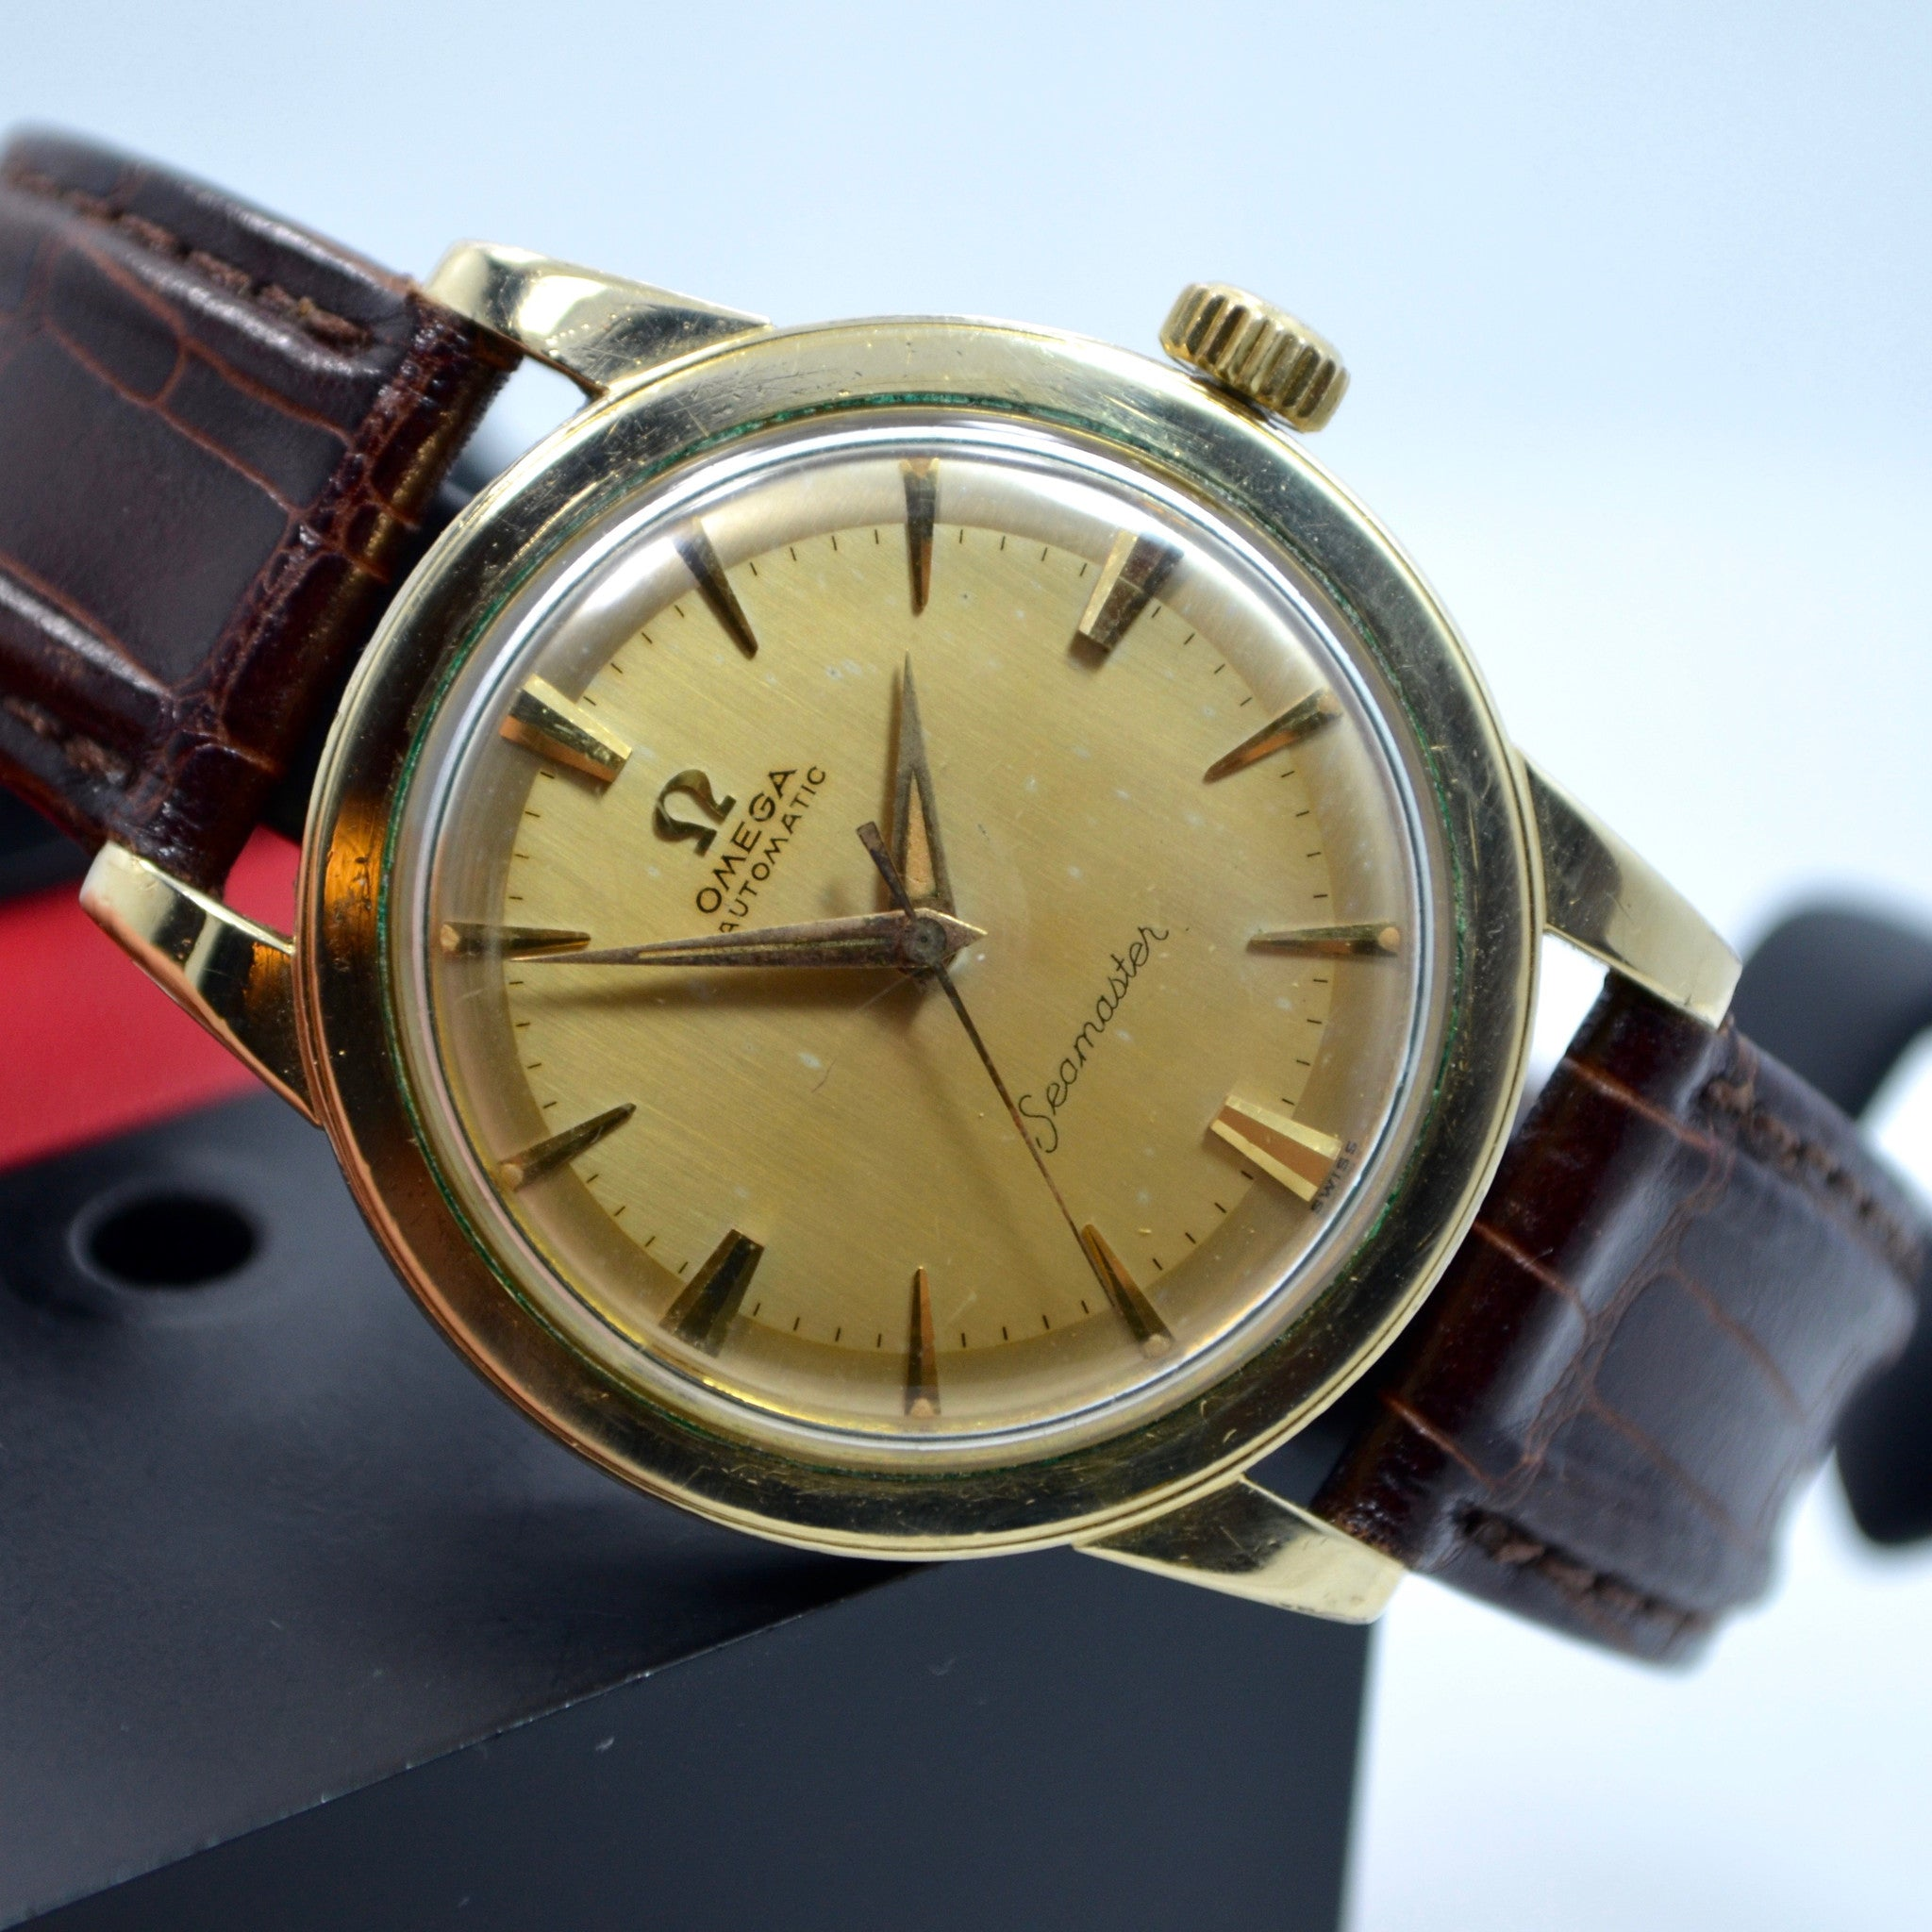 Vintage Omega Seamaster 6250 Gold Filled Automatic Cal. 500 Wristwatch 1950's - Hashtag Watch Company